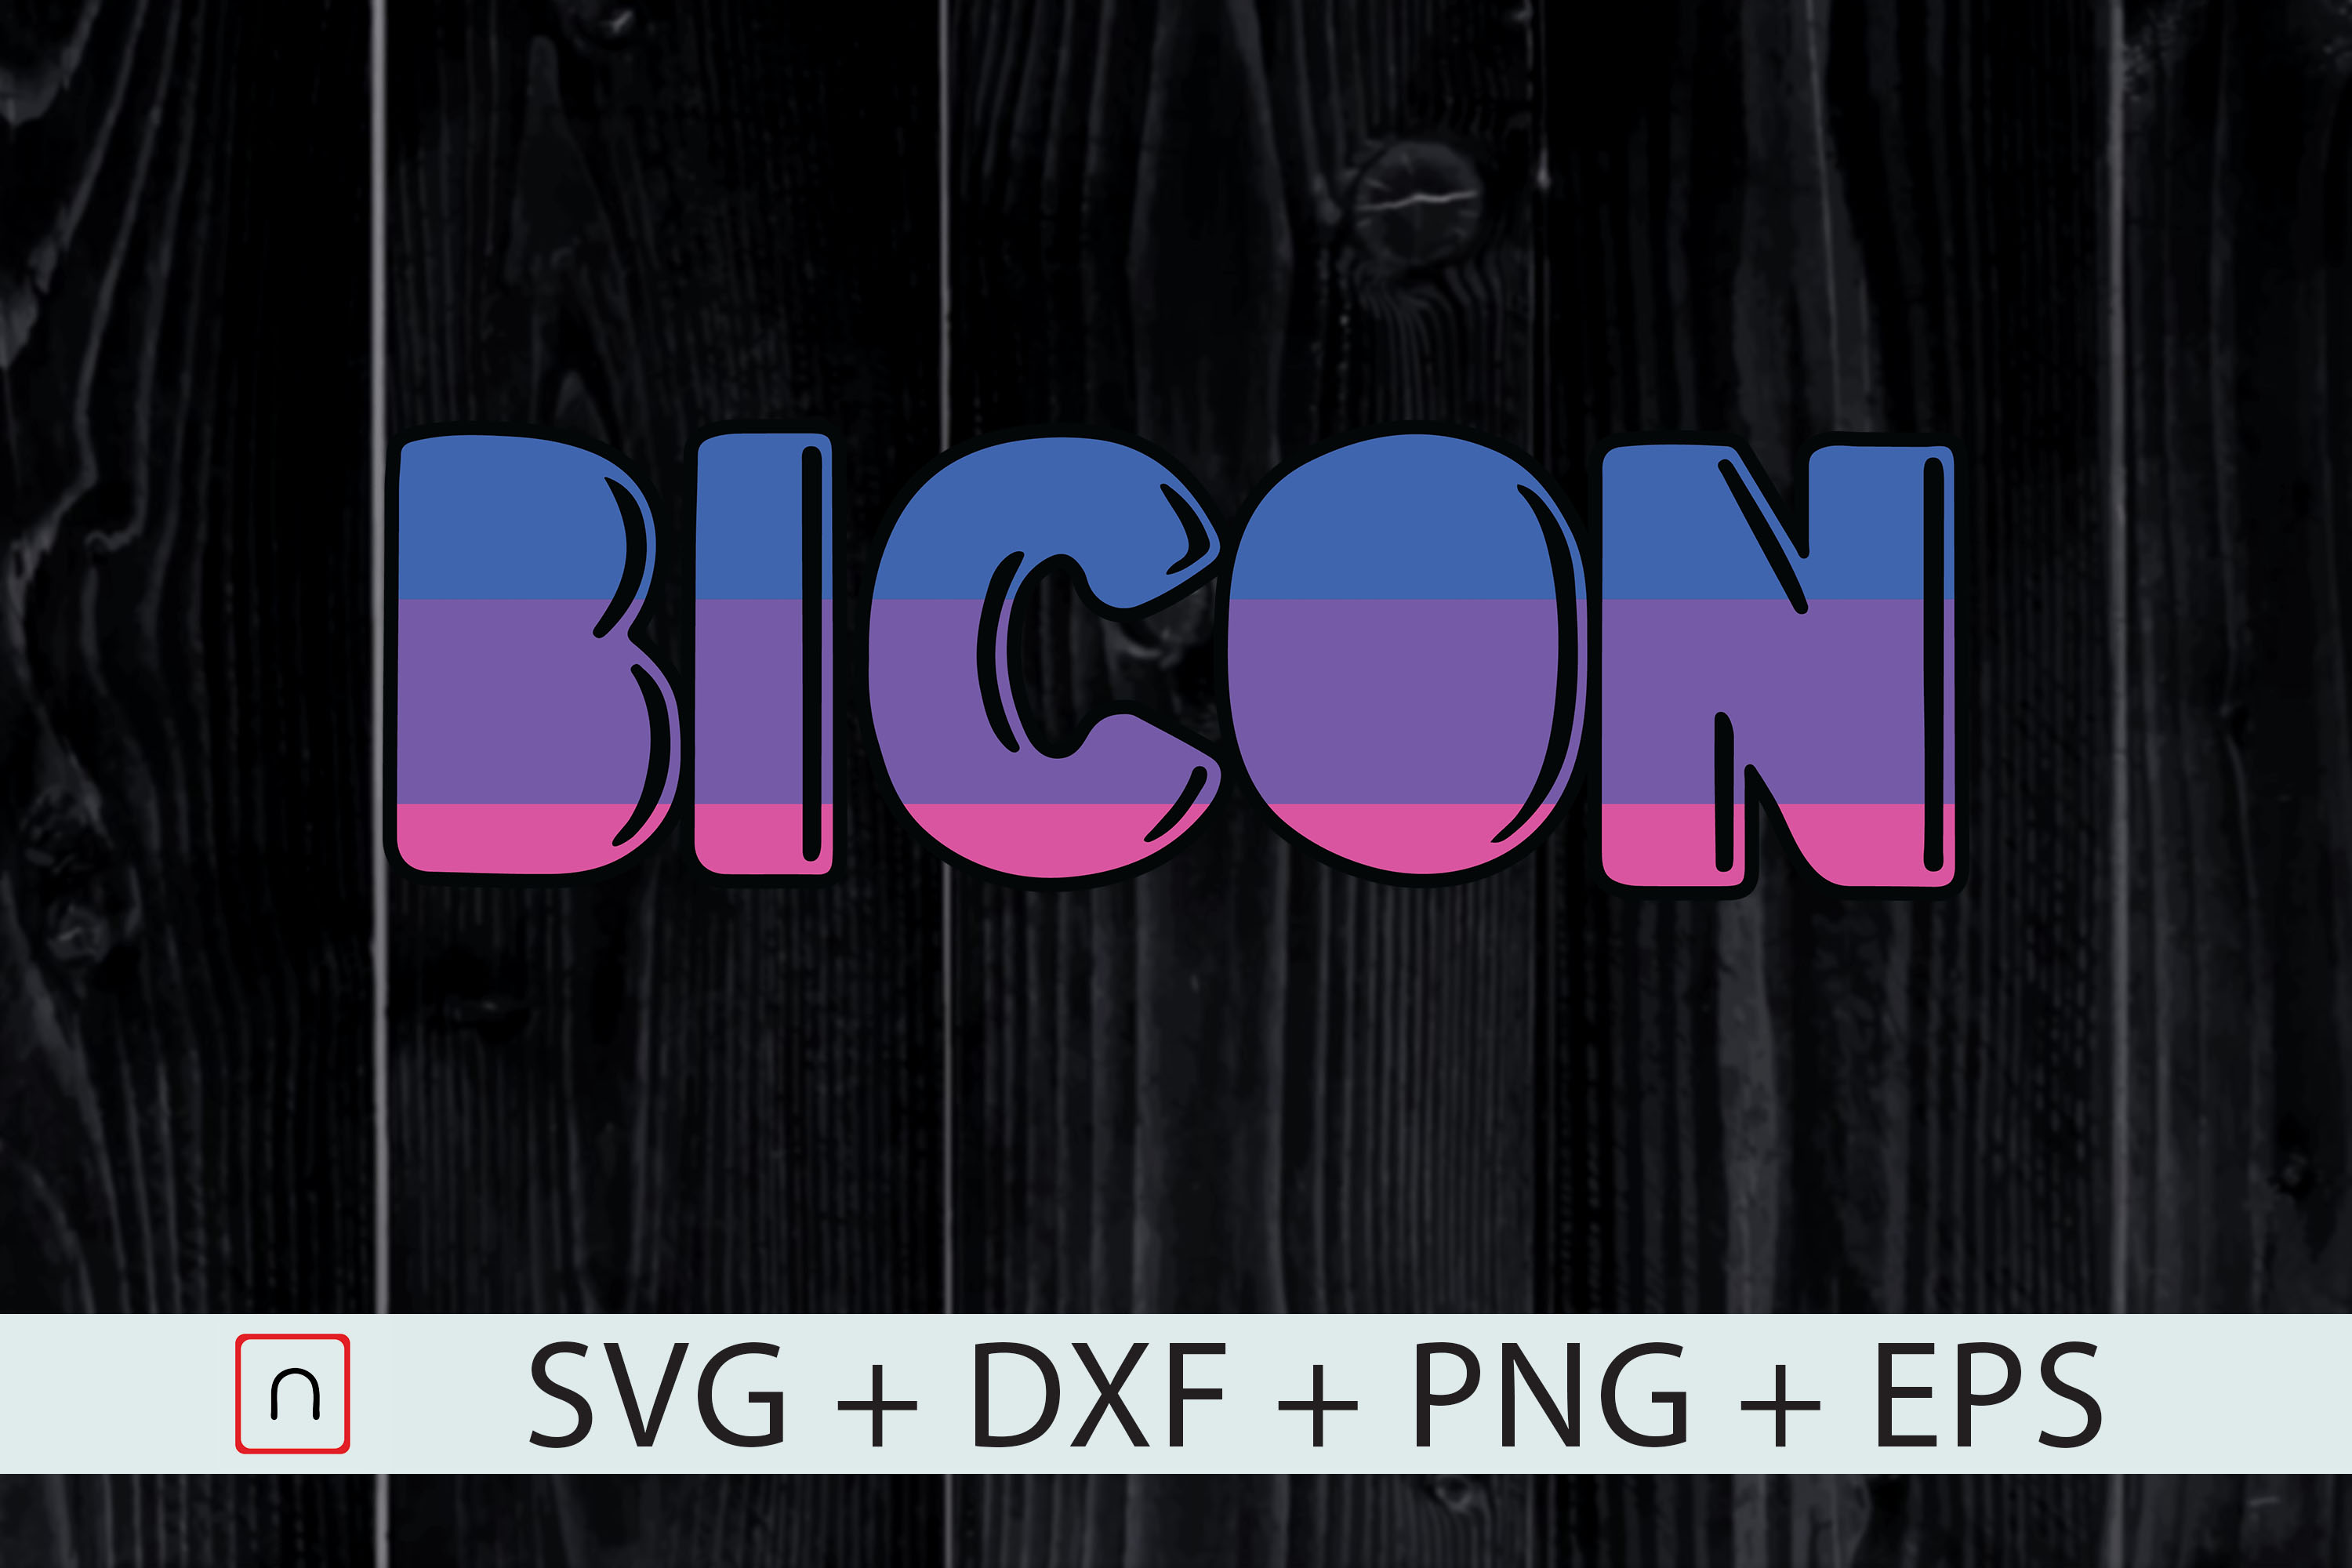 Download Free Bi Icon Lgbt Bi Pride Flag Graphic By Novalia Creative Fabrica for Cricut Explore, Silhouette and other cutting machines.